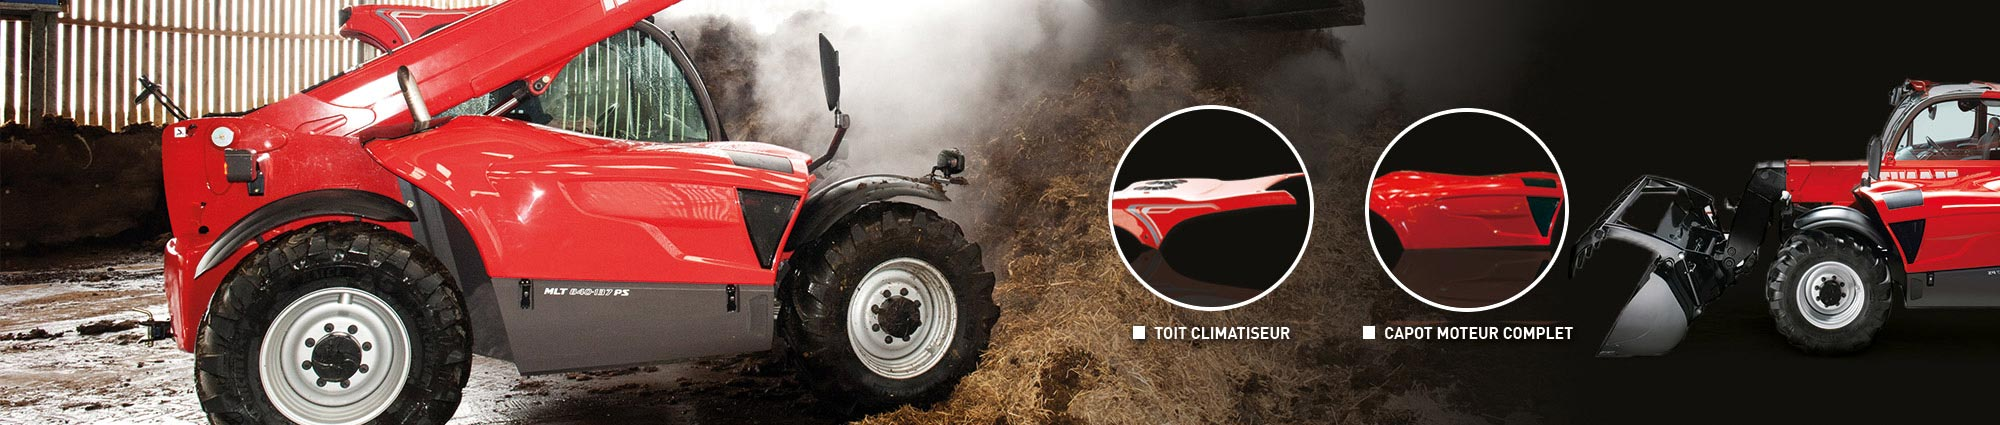 technoplast_industries_specialiste_thermoformage_manitou